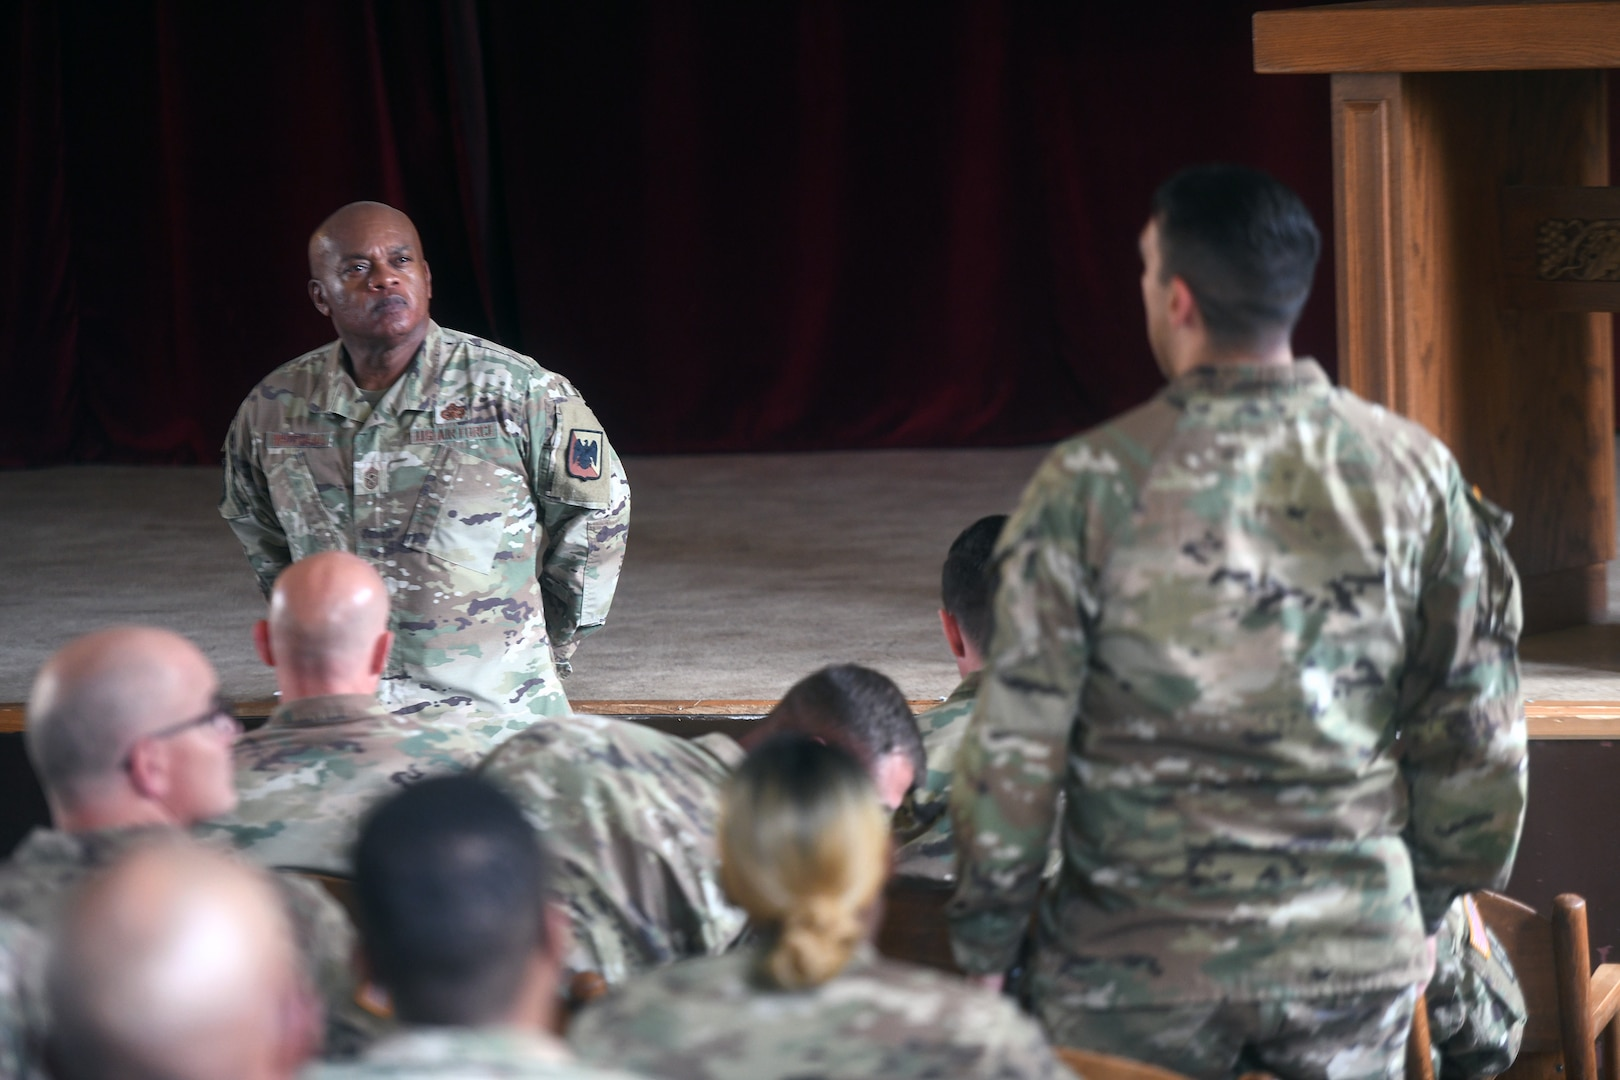 Senior Enlisted Advisor Tony Whitehead, senior enlisted advisor to the chief of the National Guard Bureau, talks with troops at a town hall during Army Gen. Daniel Hokanson's visit with National Guard troops, Powidz, Poland, June 12, 2021.